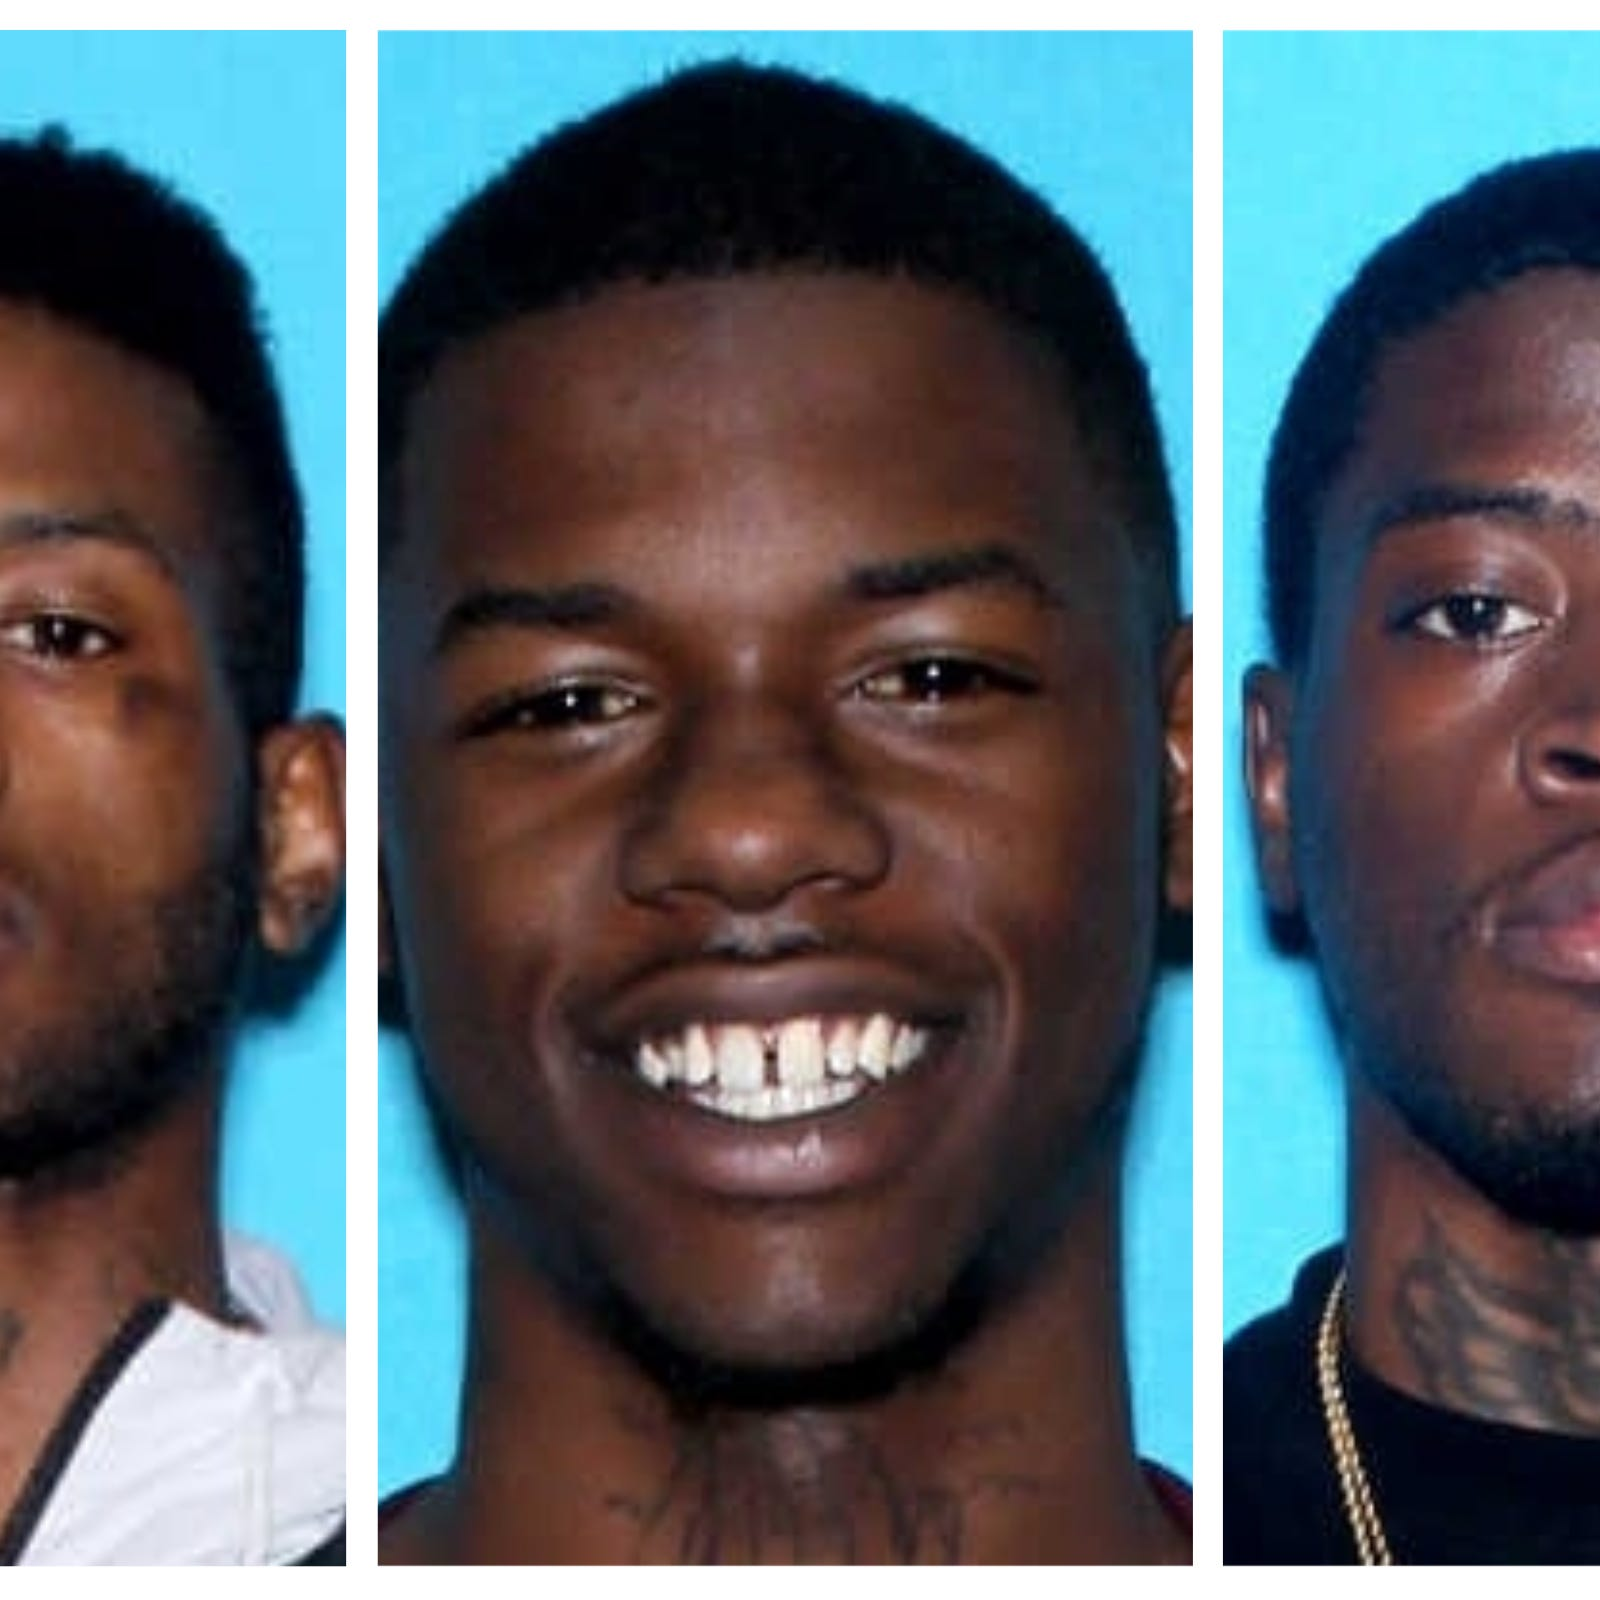 Suspects in Millbrook armed robbery face dozens of theft charges in Prattville